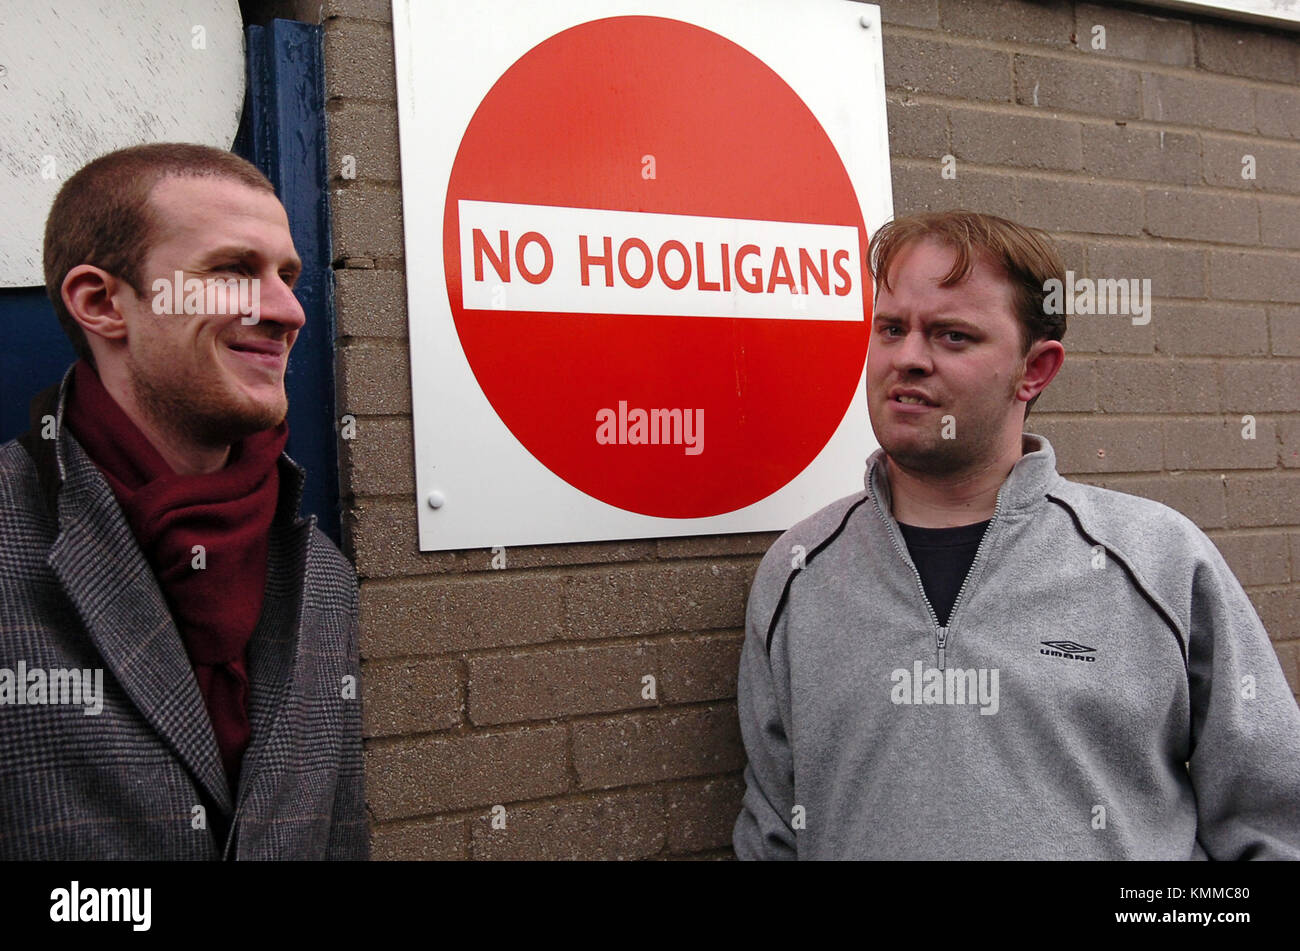 Sports journalist chatting next to 'No Hooligans' sign banning hooligans from Cardiff City Football Club - Stock Image